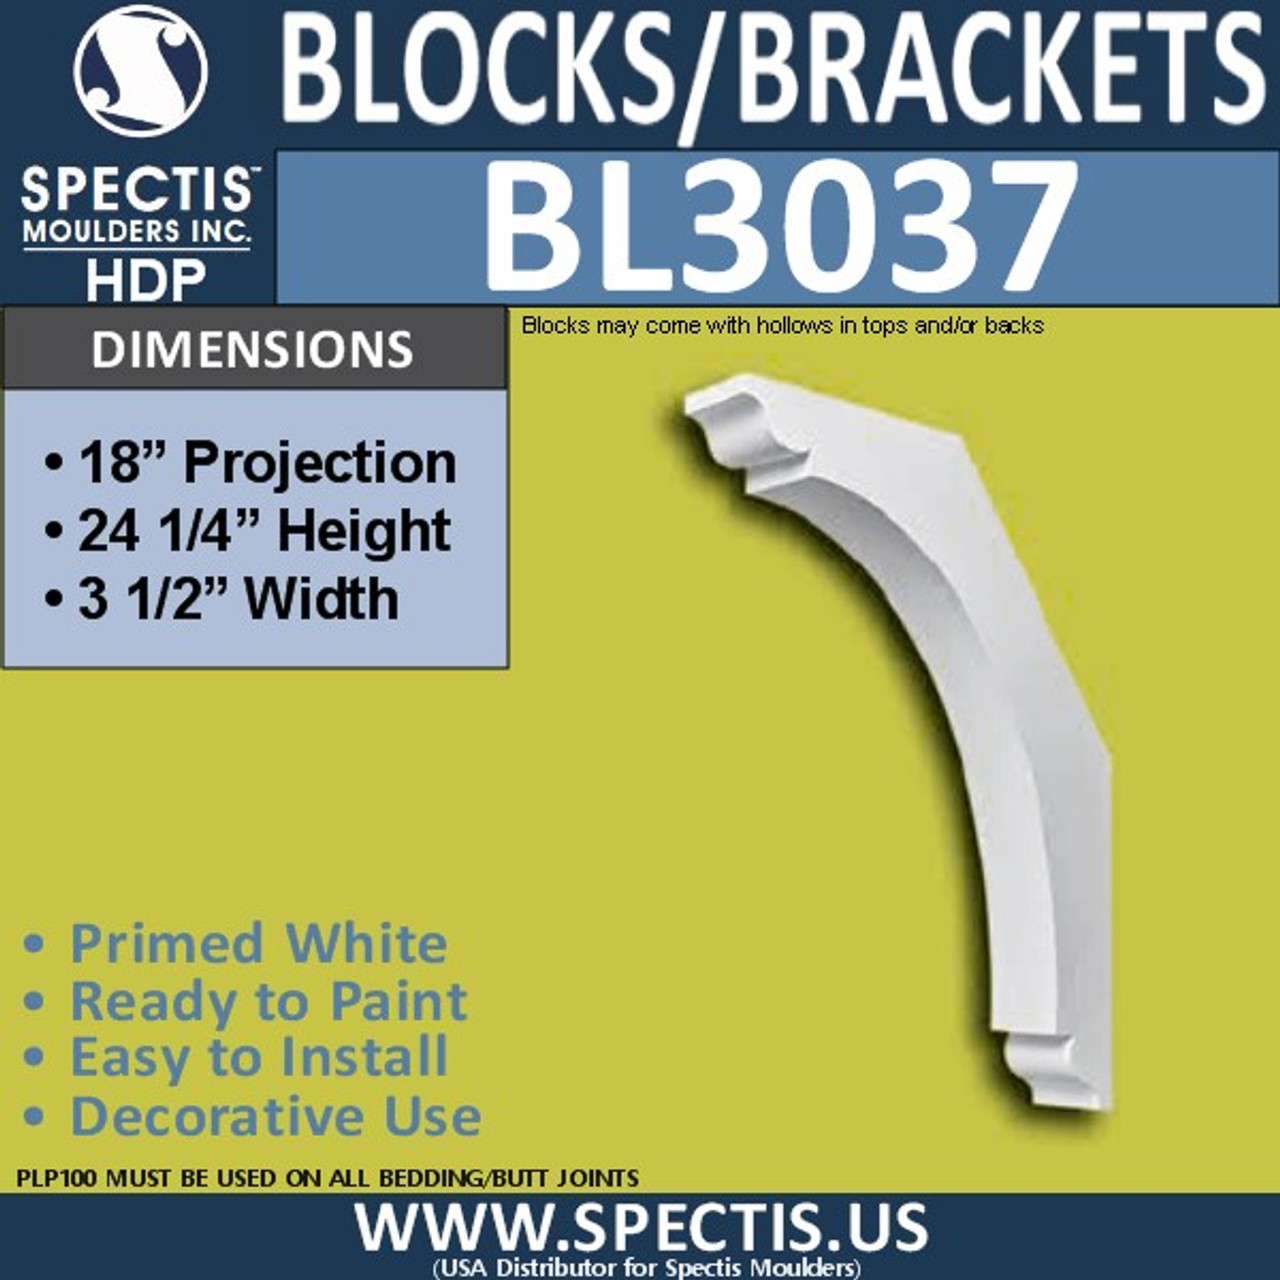 "BL3037 Eave Block or Bracket 3.5""W x 24.25""H x 18"" P"